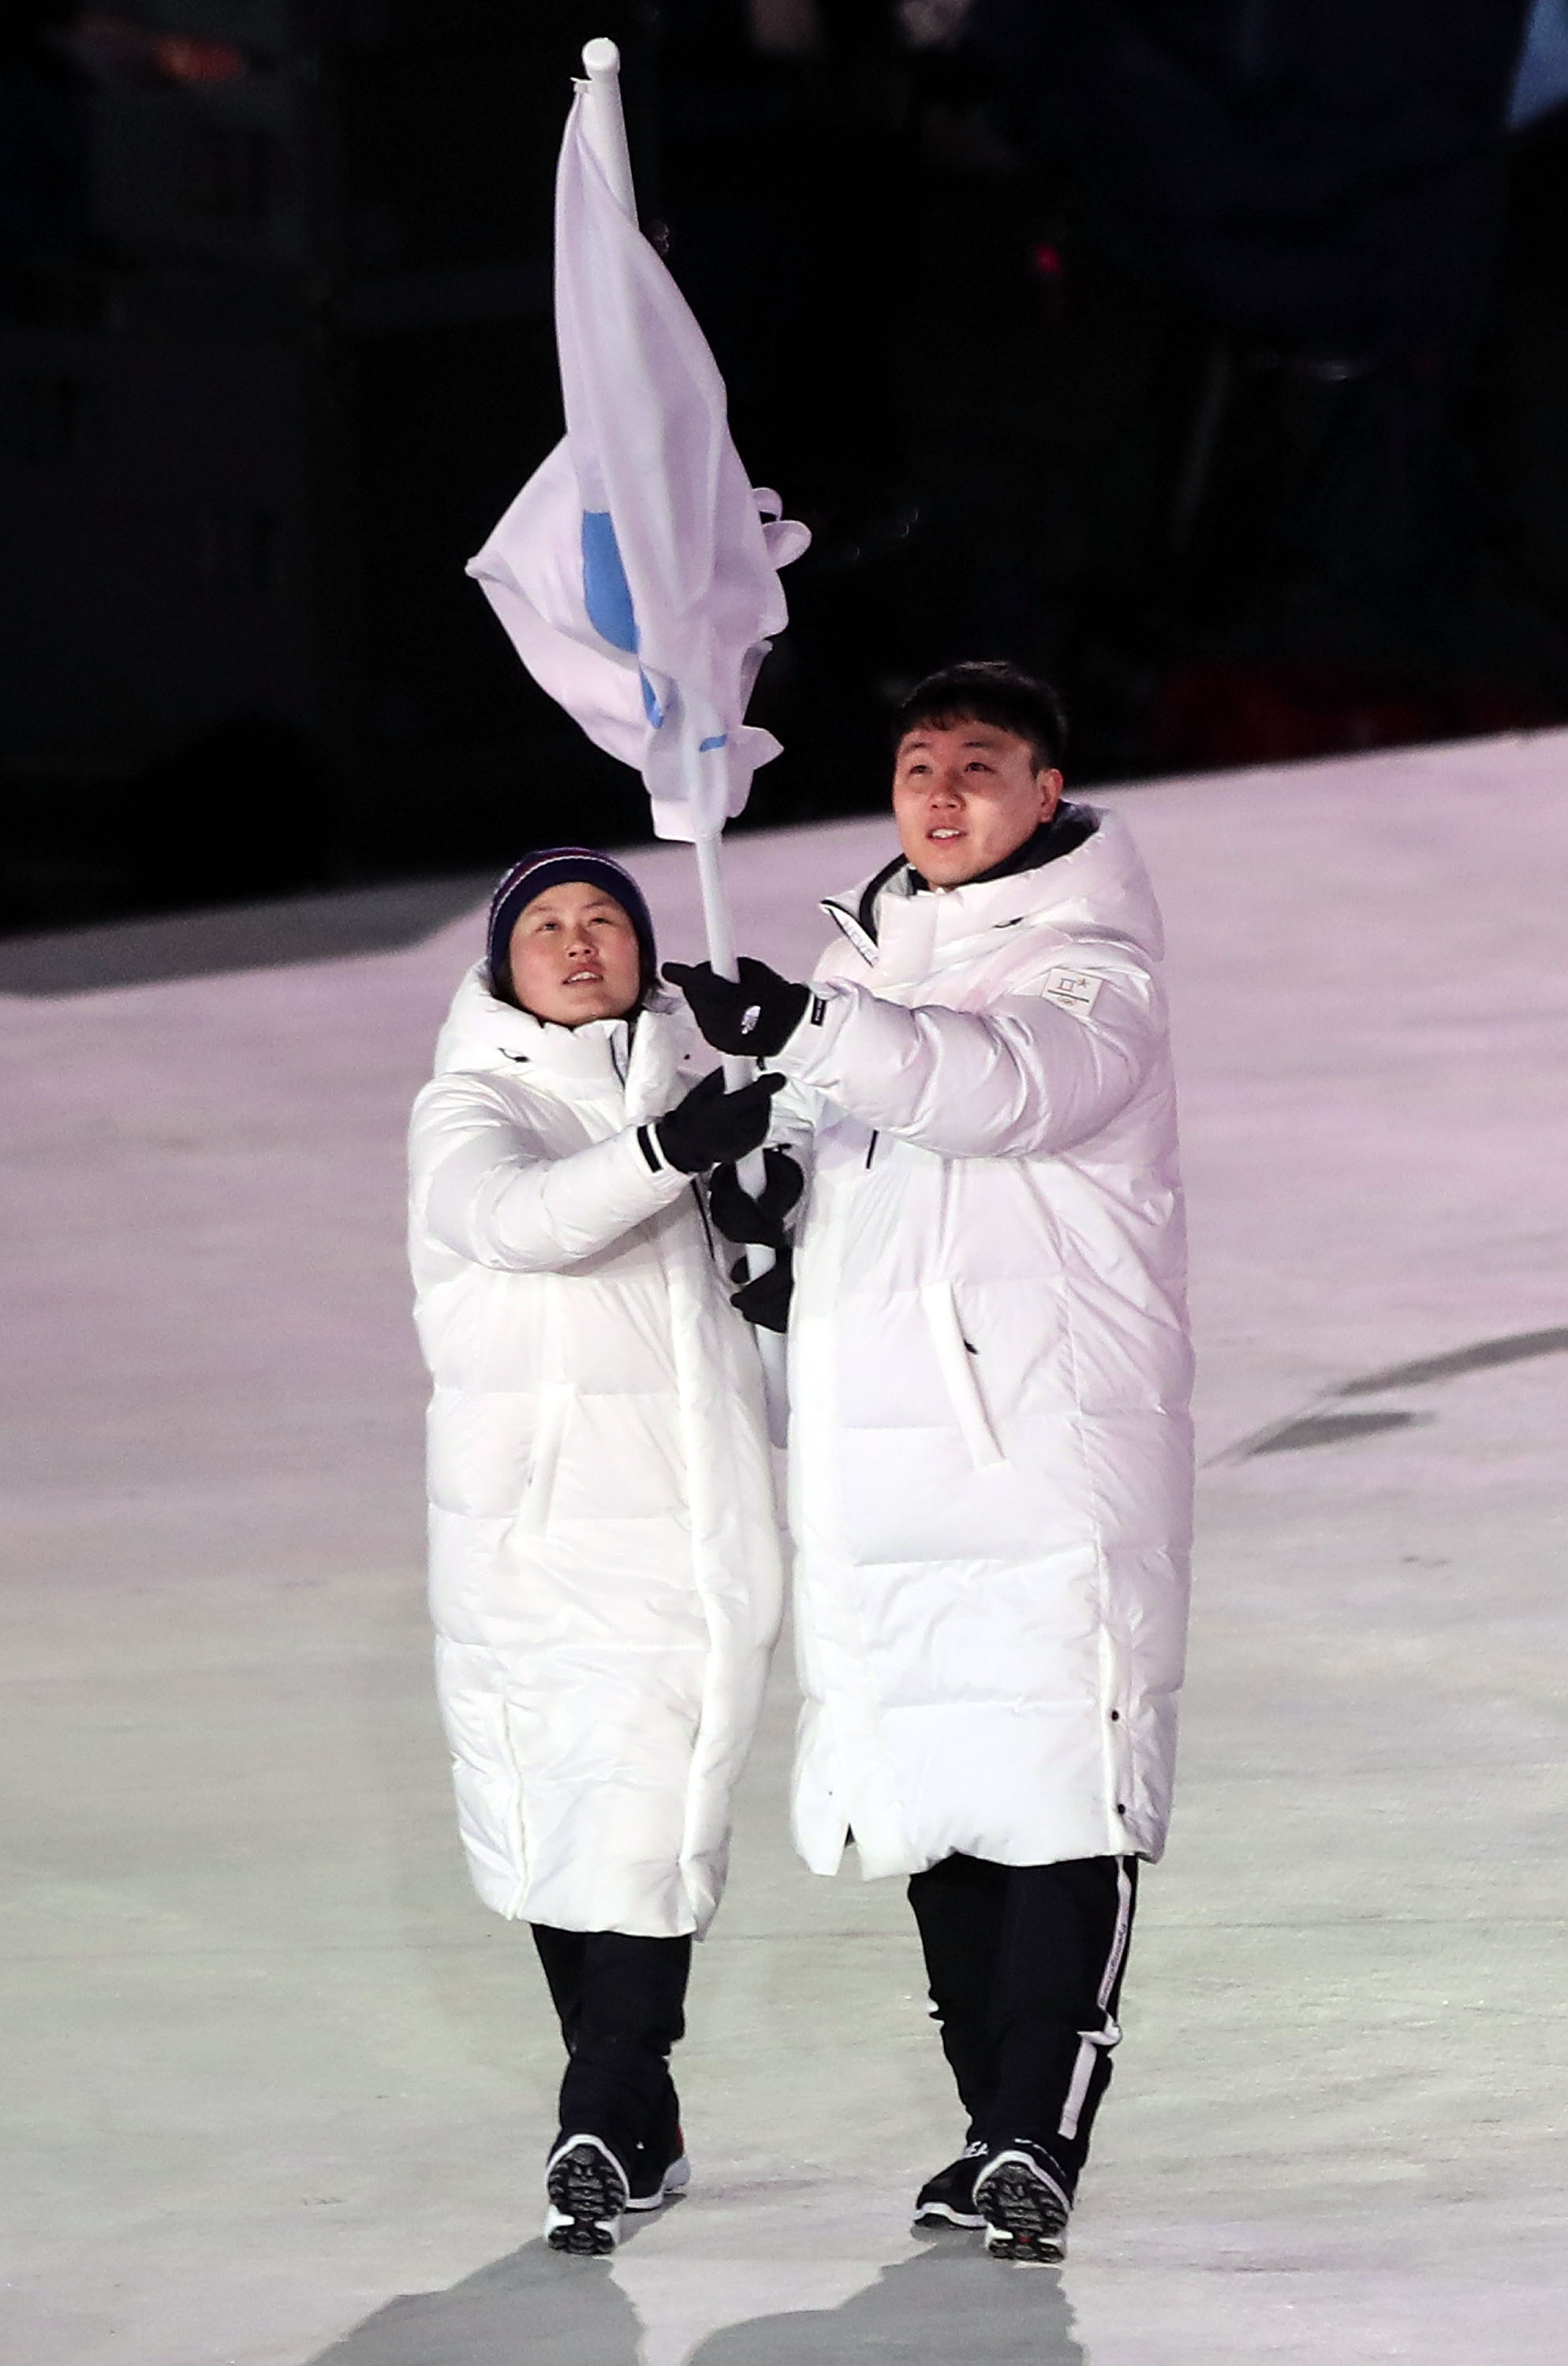 PYEONGCHANG-GUN, SOUTH KOREA - FEBRUARY 09:  Flag bearers Chung Guam Hwang and Yunjong Won of Republic of Korea leads the team during the Opening Ceremony of the PyeongChang 2018 Winter Olympic Games at PyeongChang Olympic Stadium on February 9, 2018 in Pyeongchang-gun, South Korea.  fee liable image, copyright © ATP  Amin JAMALI  XXIII. OLYMPIC WINTER GAMES PYEONGCHANG 2018: OPENING CEREMONY,  PyeongChang, Korea, Winter Olympics; PyeongChang Olympic Stadium, on 9. February 2018, fee liable image, copyright © ATP / Amin JAMALI  Featuring: Flag bearers Chung Guam Hwang and Yunjong Won of Republic of Korea Where: Pyeongchang, Gangwon Province, South Korea When: 09 Feb 2018 Credit: ATP/WENN.com  **Not available for publication in Germany or France. No Contact Music.**